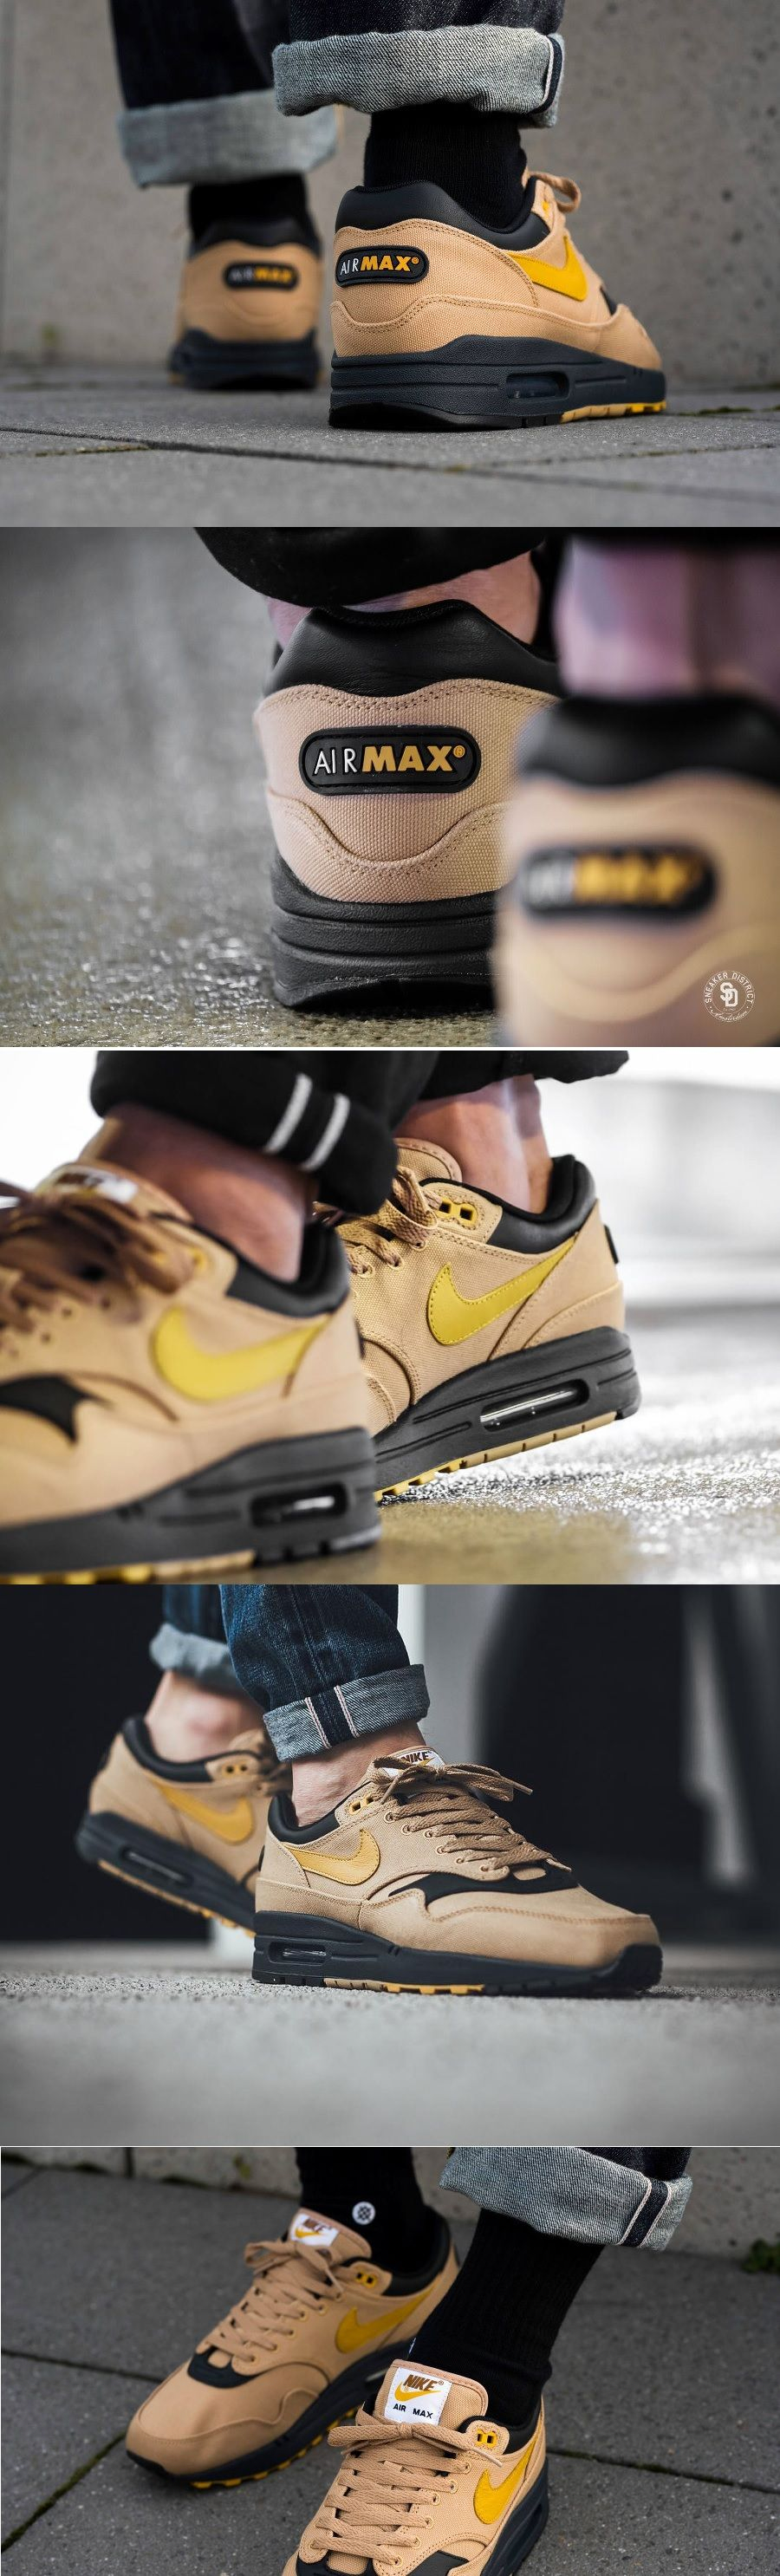 Nike Air Max 1 #Premium #Elemental #Gold | Sneakers | Nike